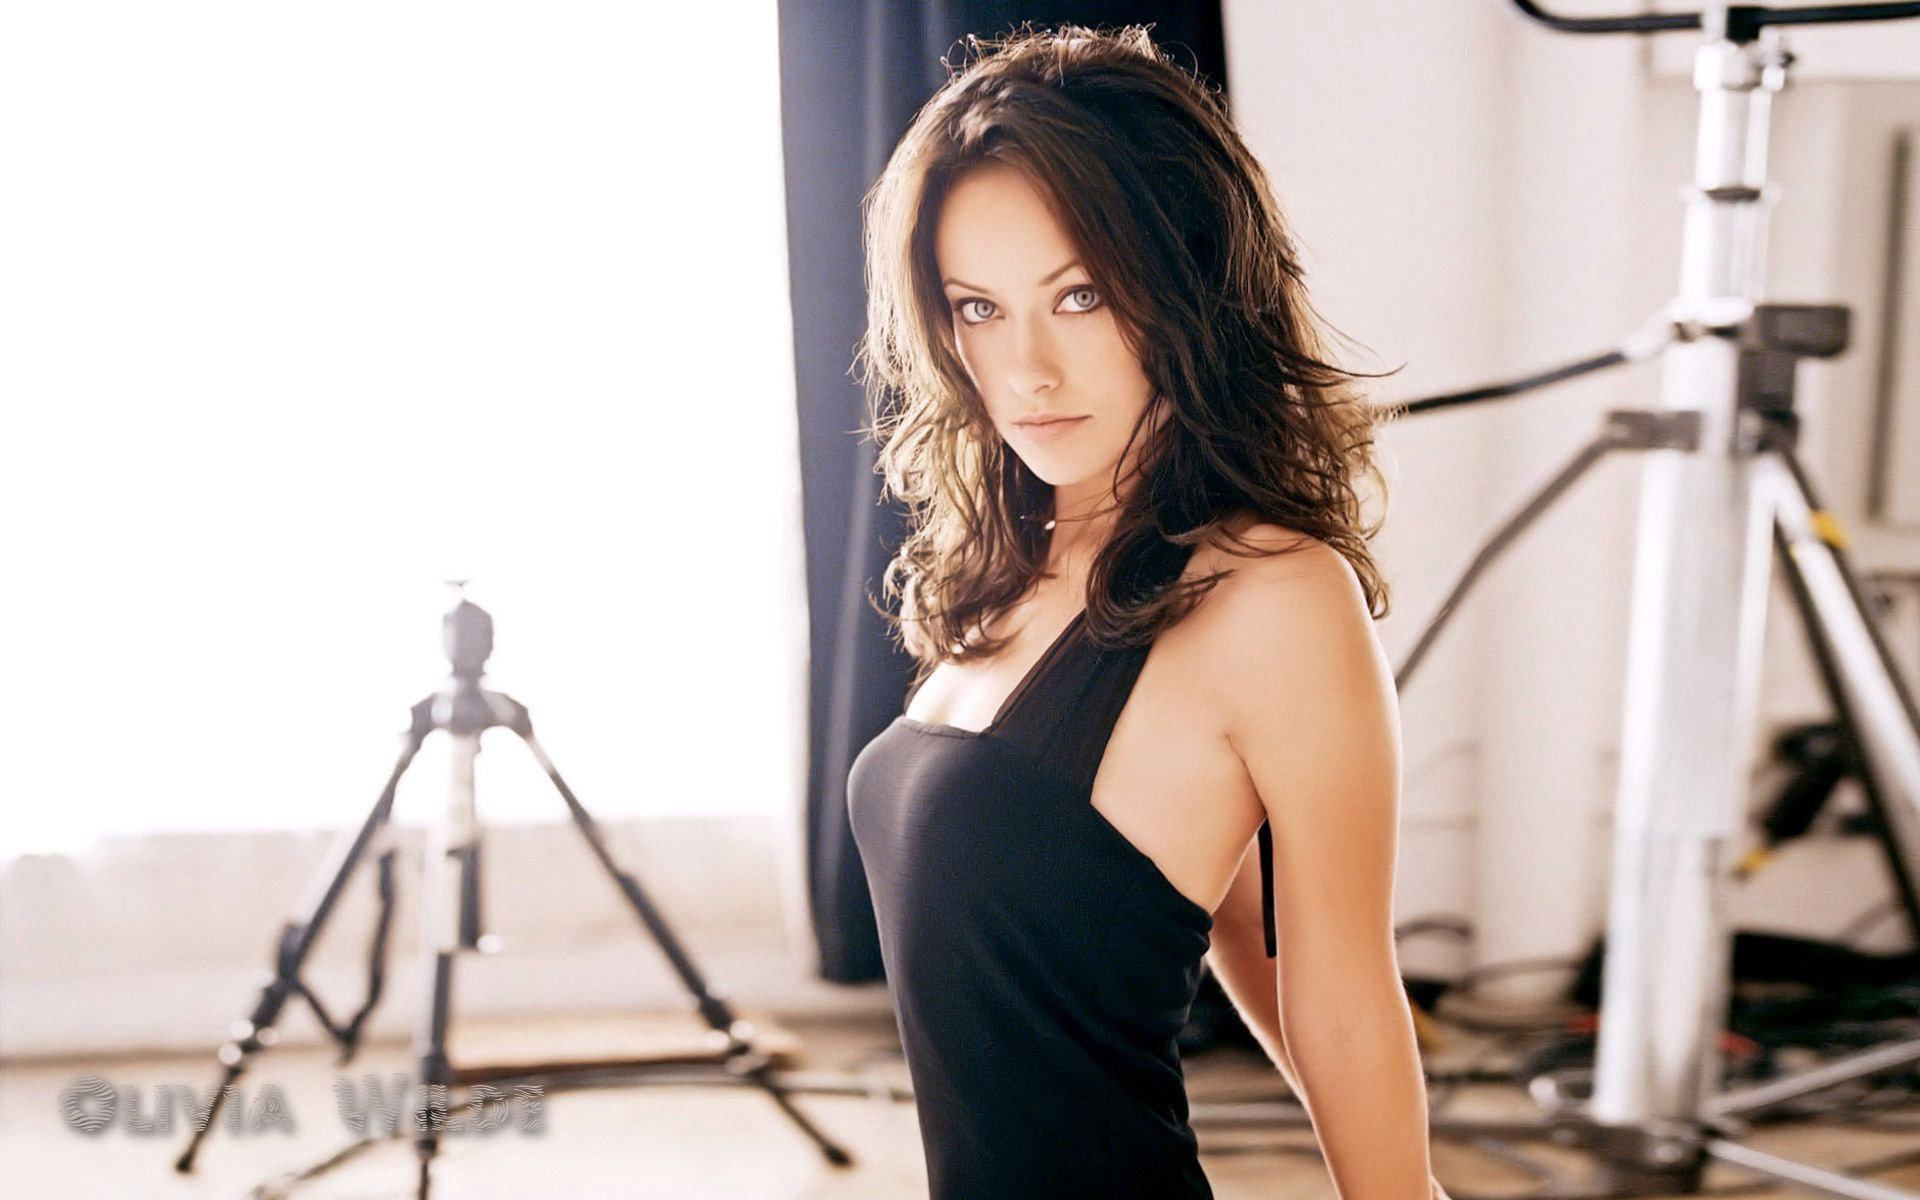 Olivia Wilde free wallpapers hd